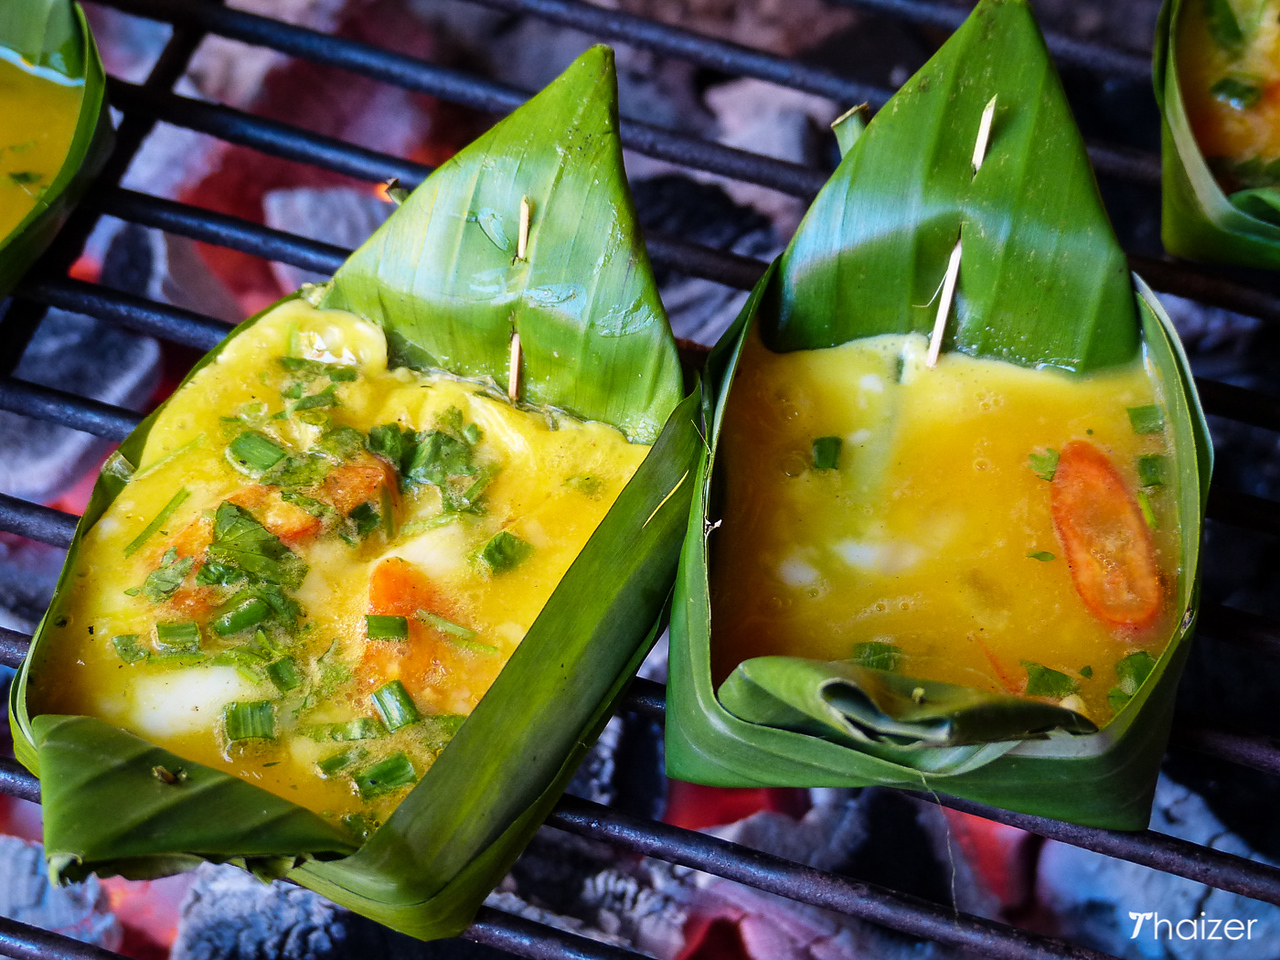 'Khai pam': egg grilled with chillies and onions and served in a banana leaf cup